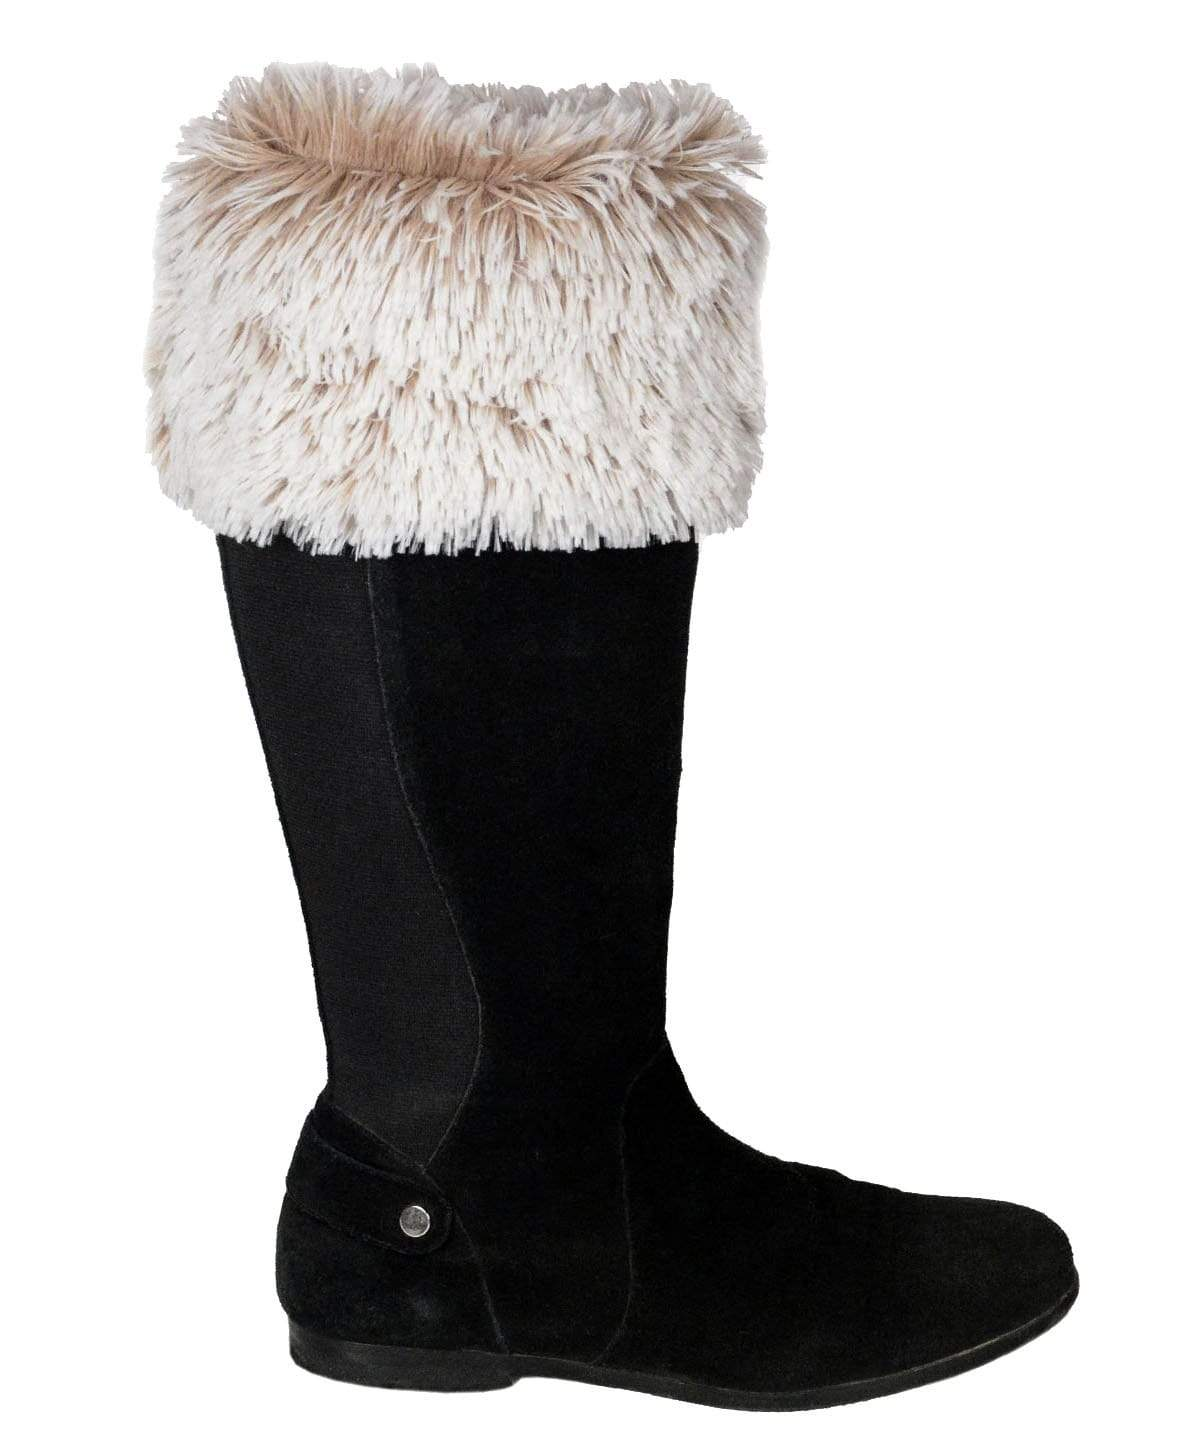 Pandemonium Millinery Boot Topper - Fox Faux Fur No Buttons / Foxy Beach Accessories